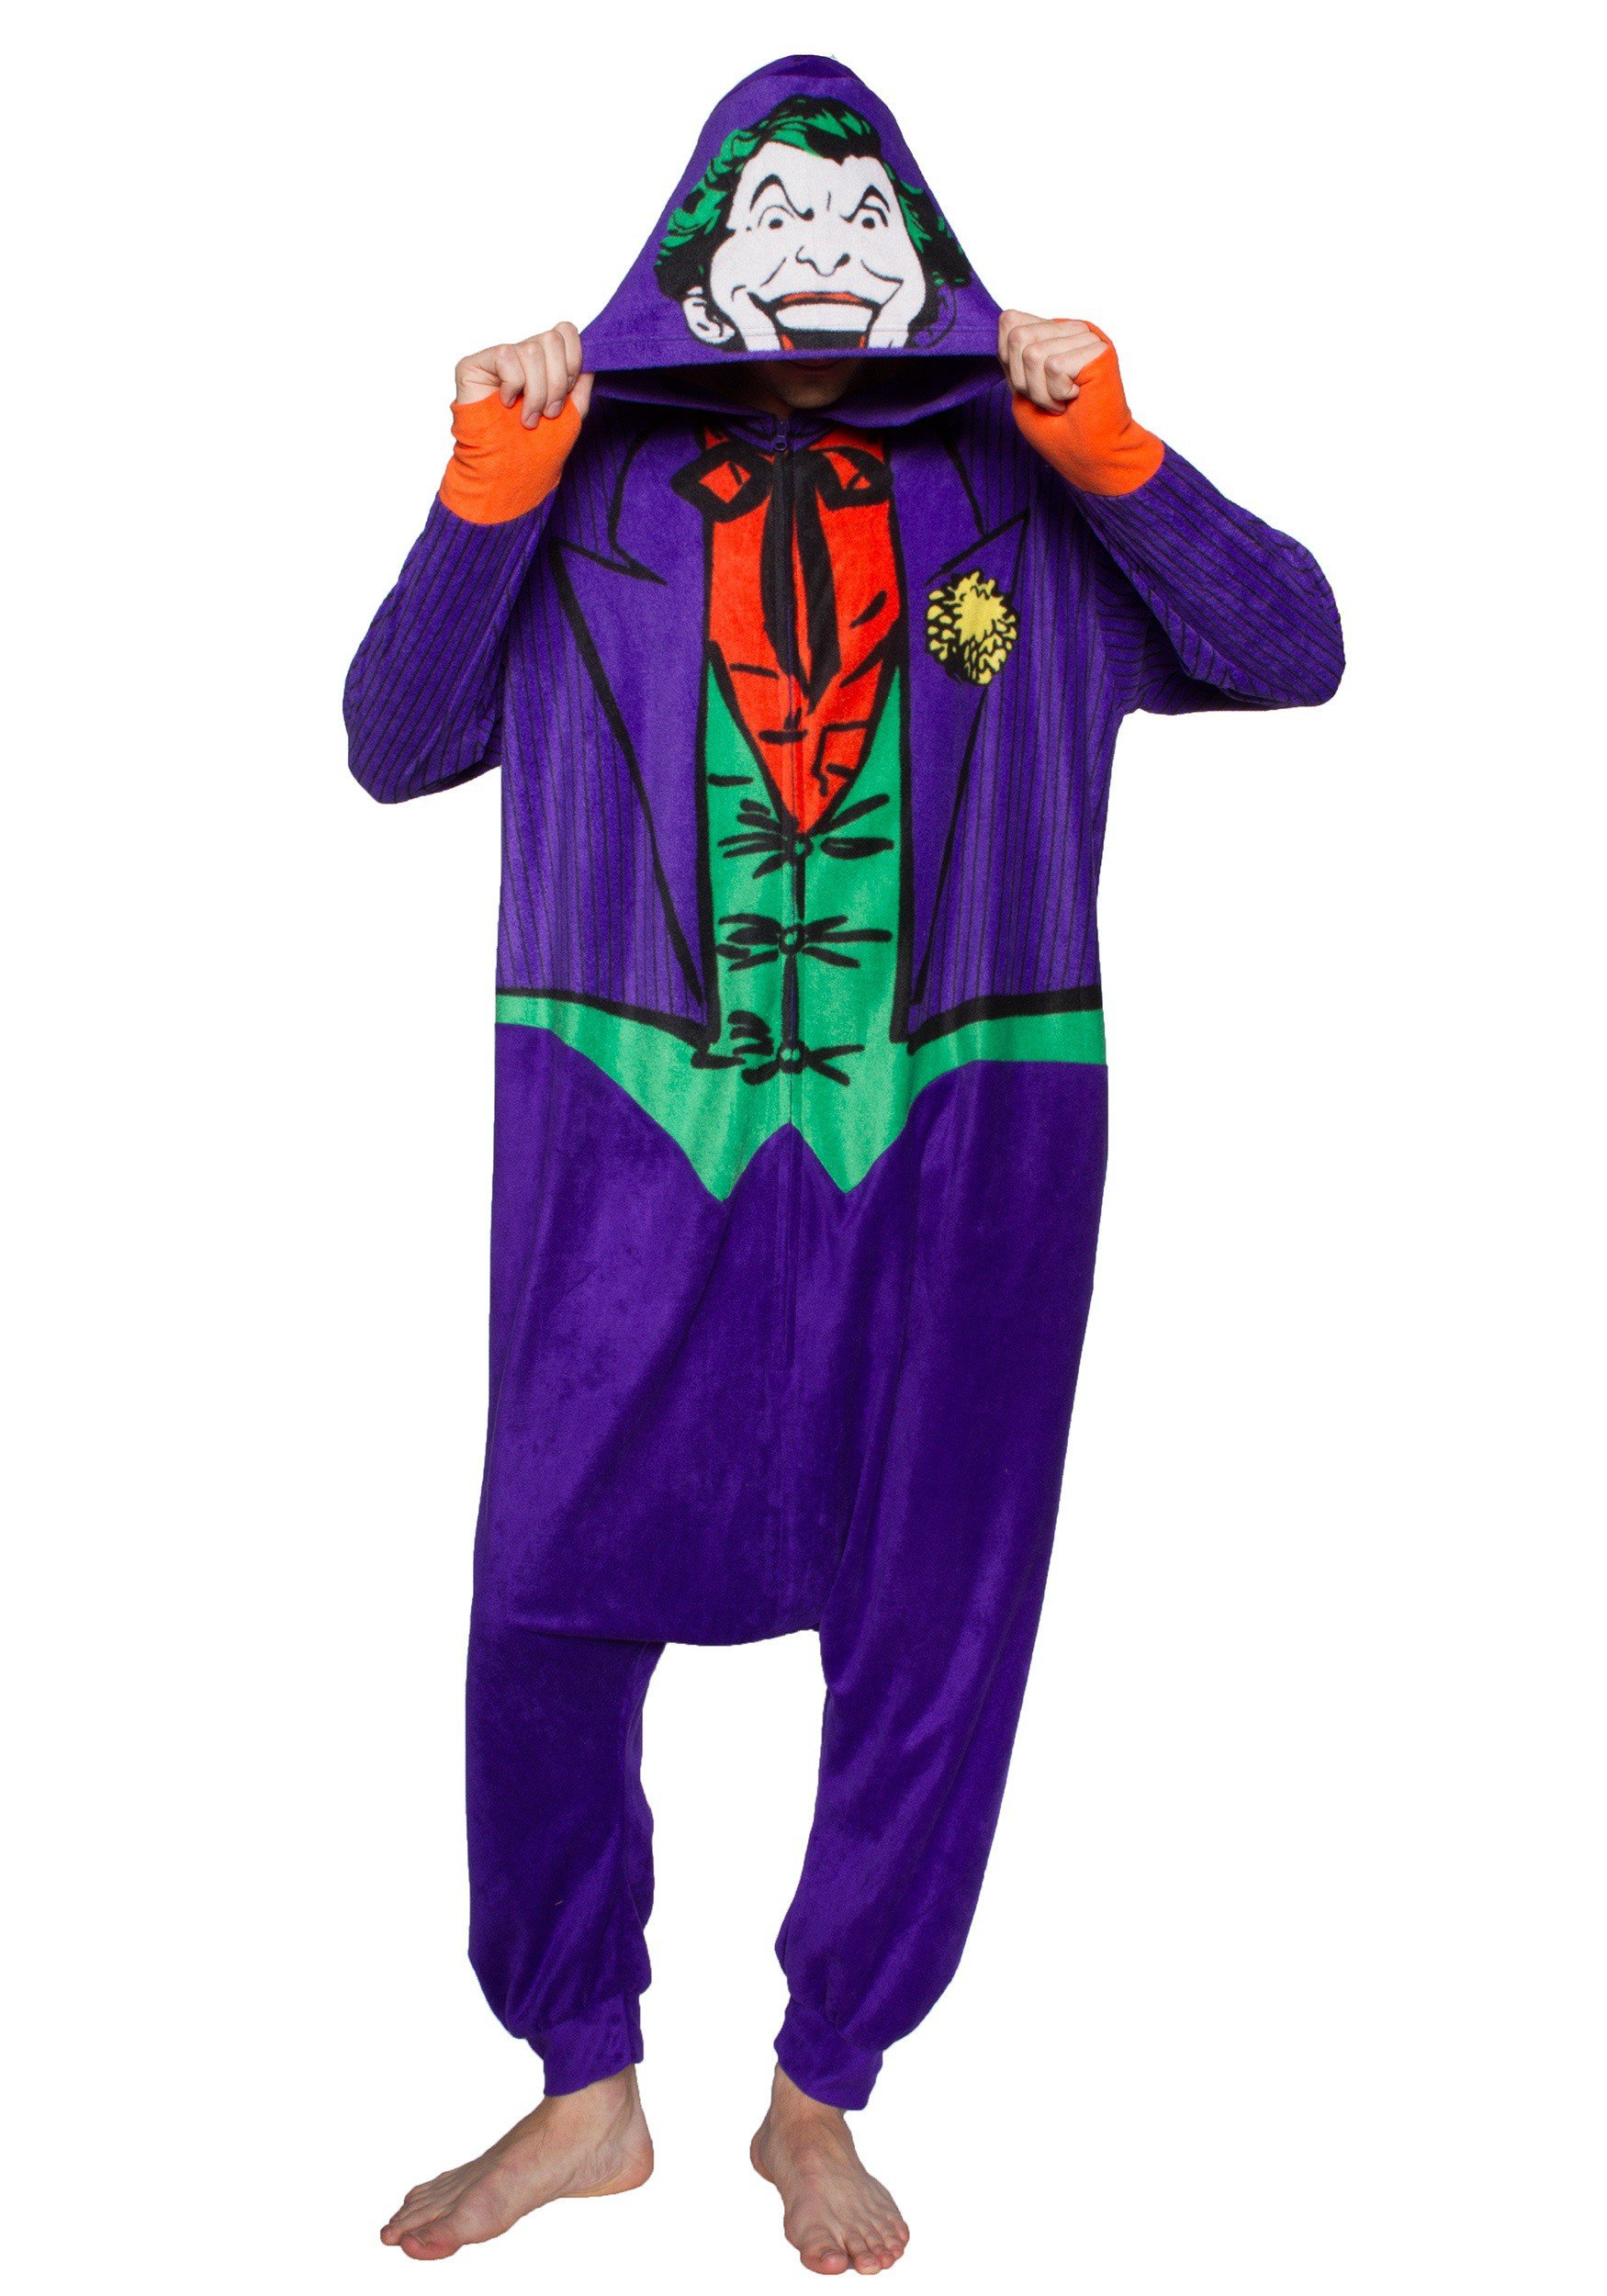 DC Comics The Joker Kigurumi One Piece Pajama